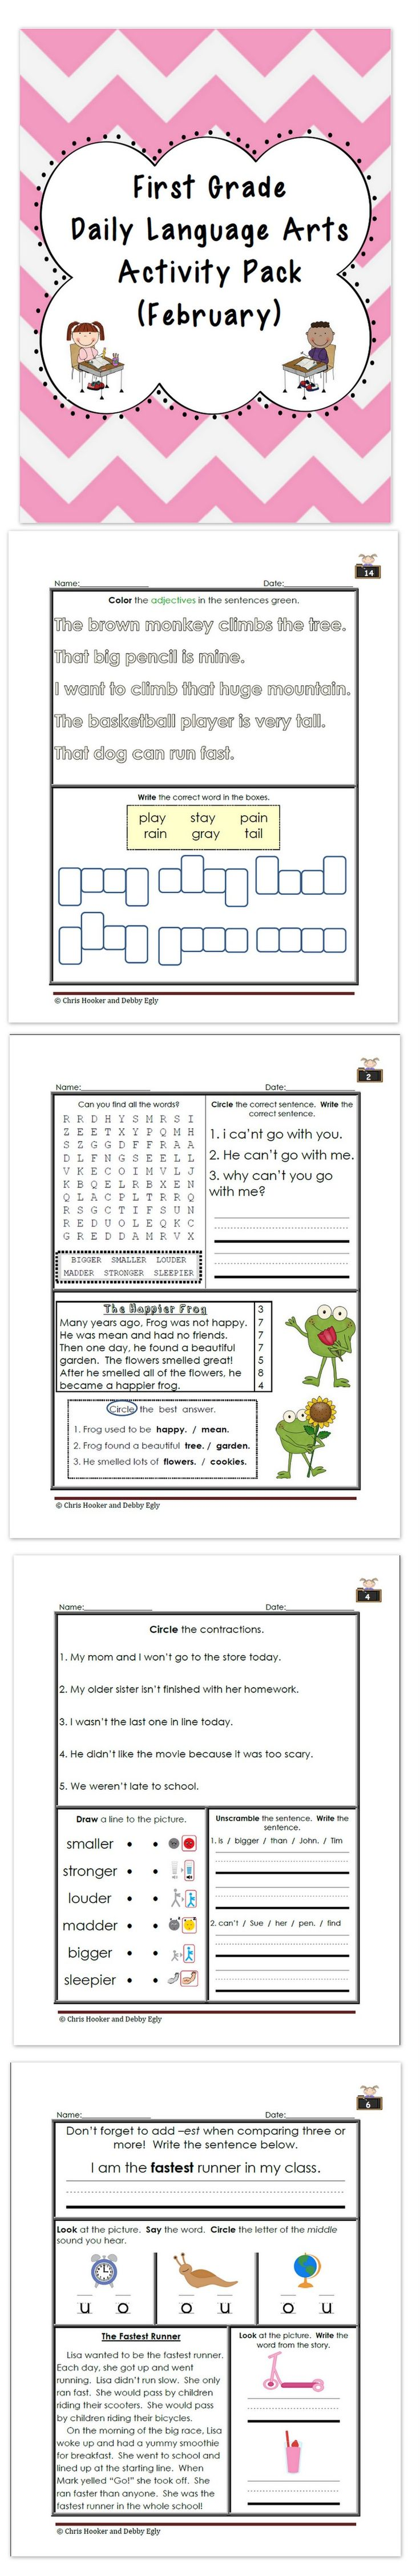 1st Grade Art Worksheets : Best images about education kids projects on pinterest